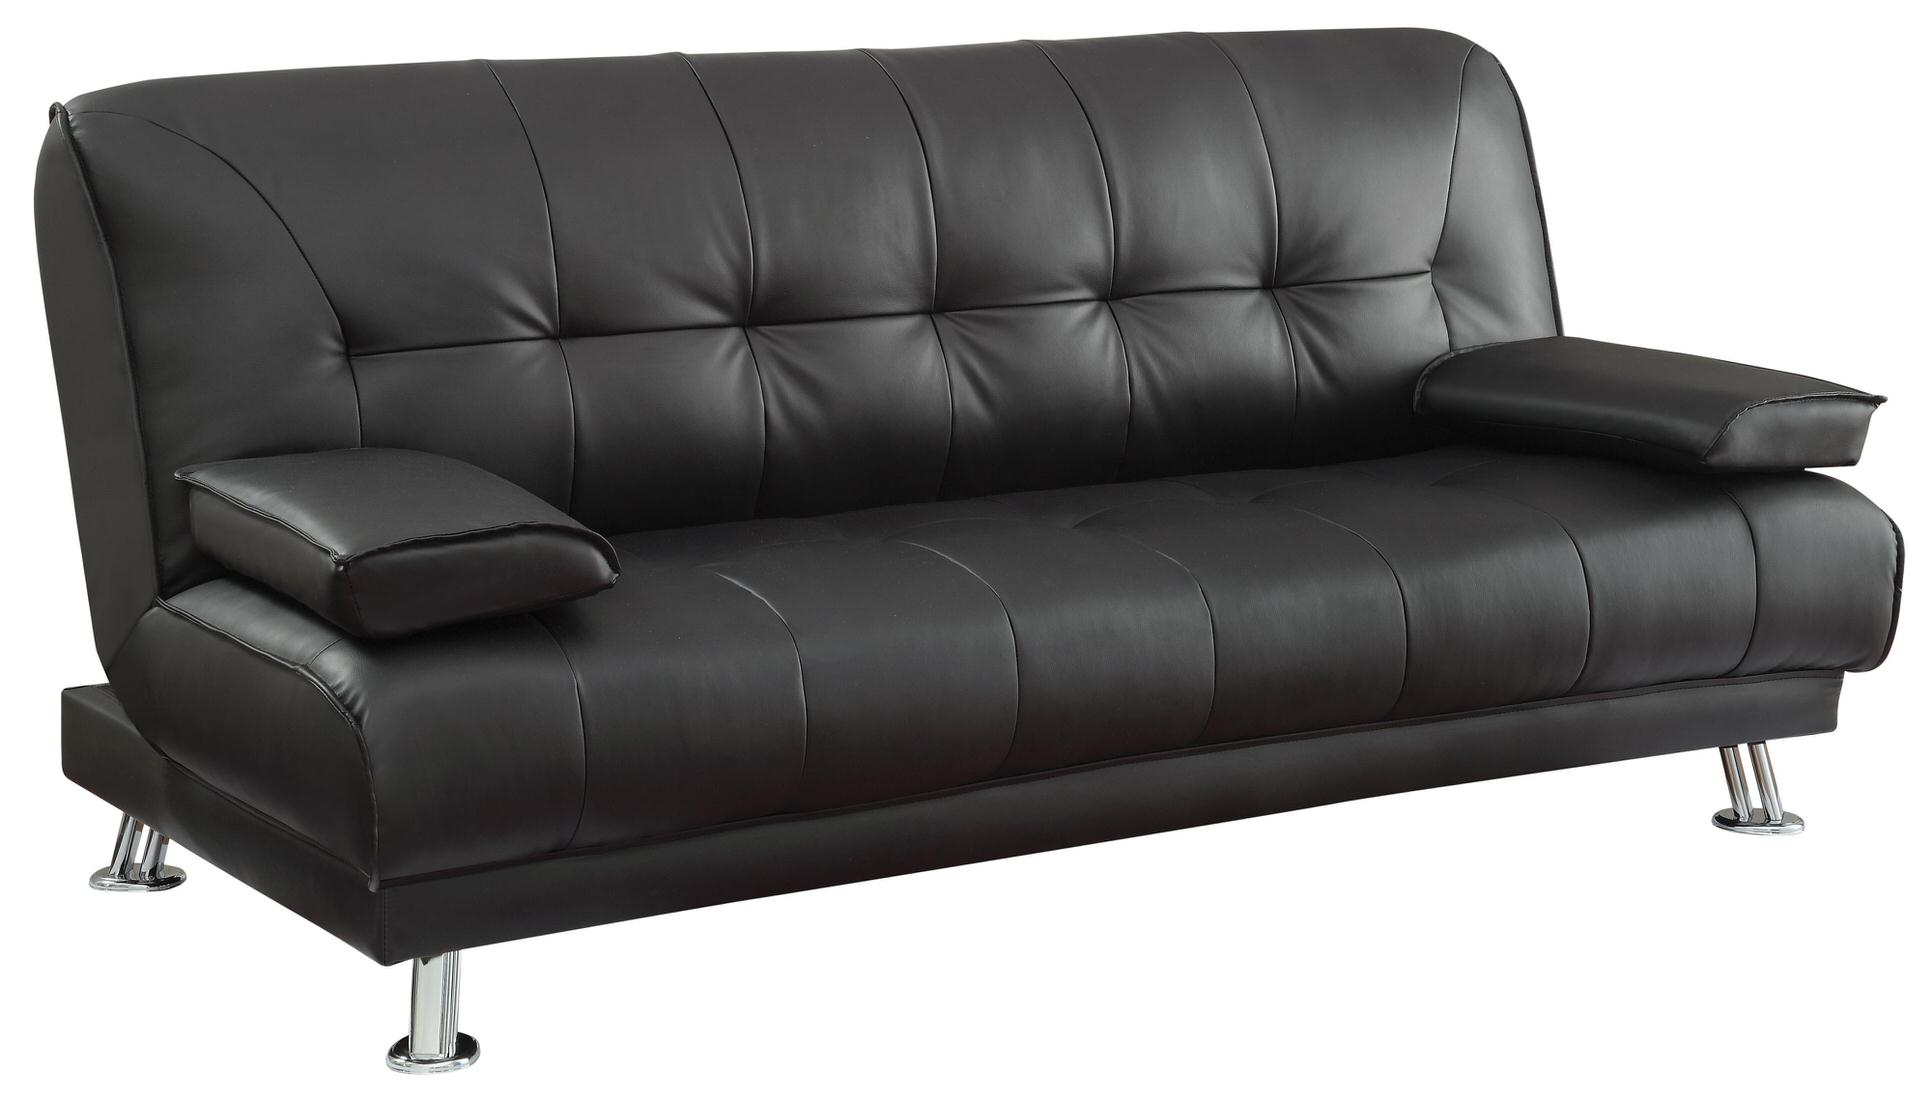 Coaster Faux Leather Convertible Sofa Bed Austin S Furniture Depot